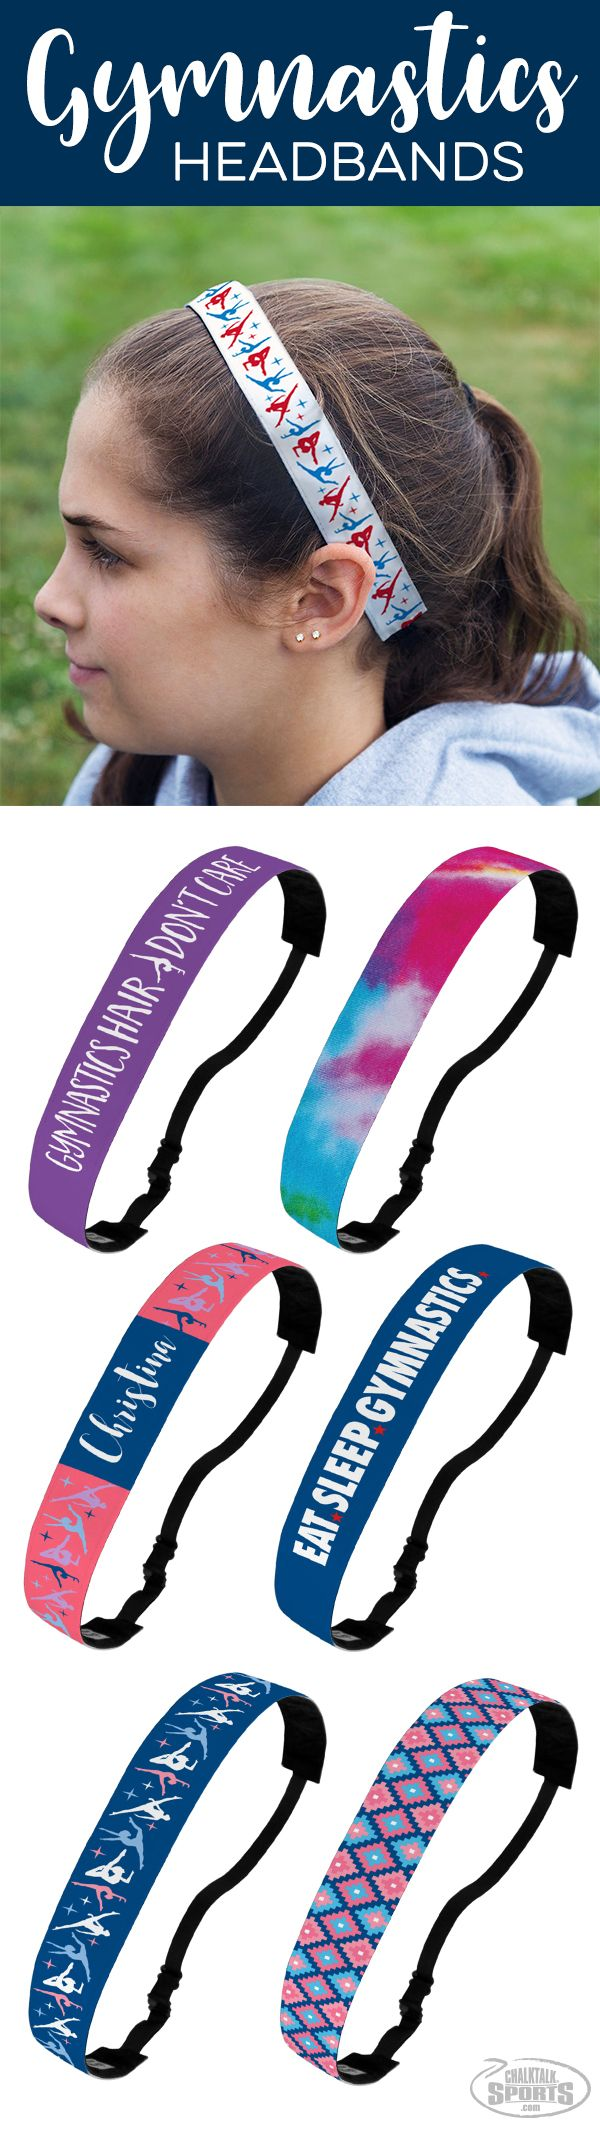 Gymnasts will love our no slip headbands...perfect for keeping hair in place and a stylish way for showing off  their love for their sport!